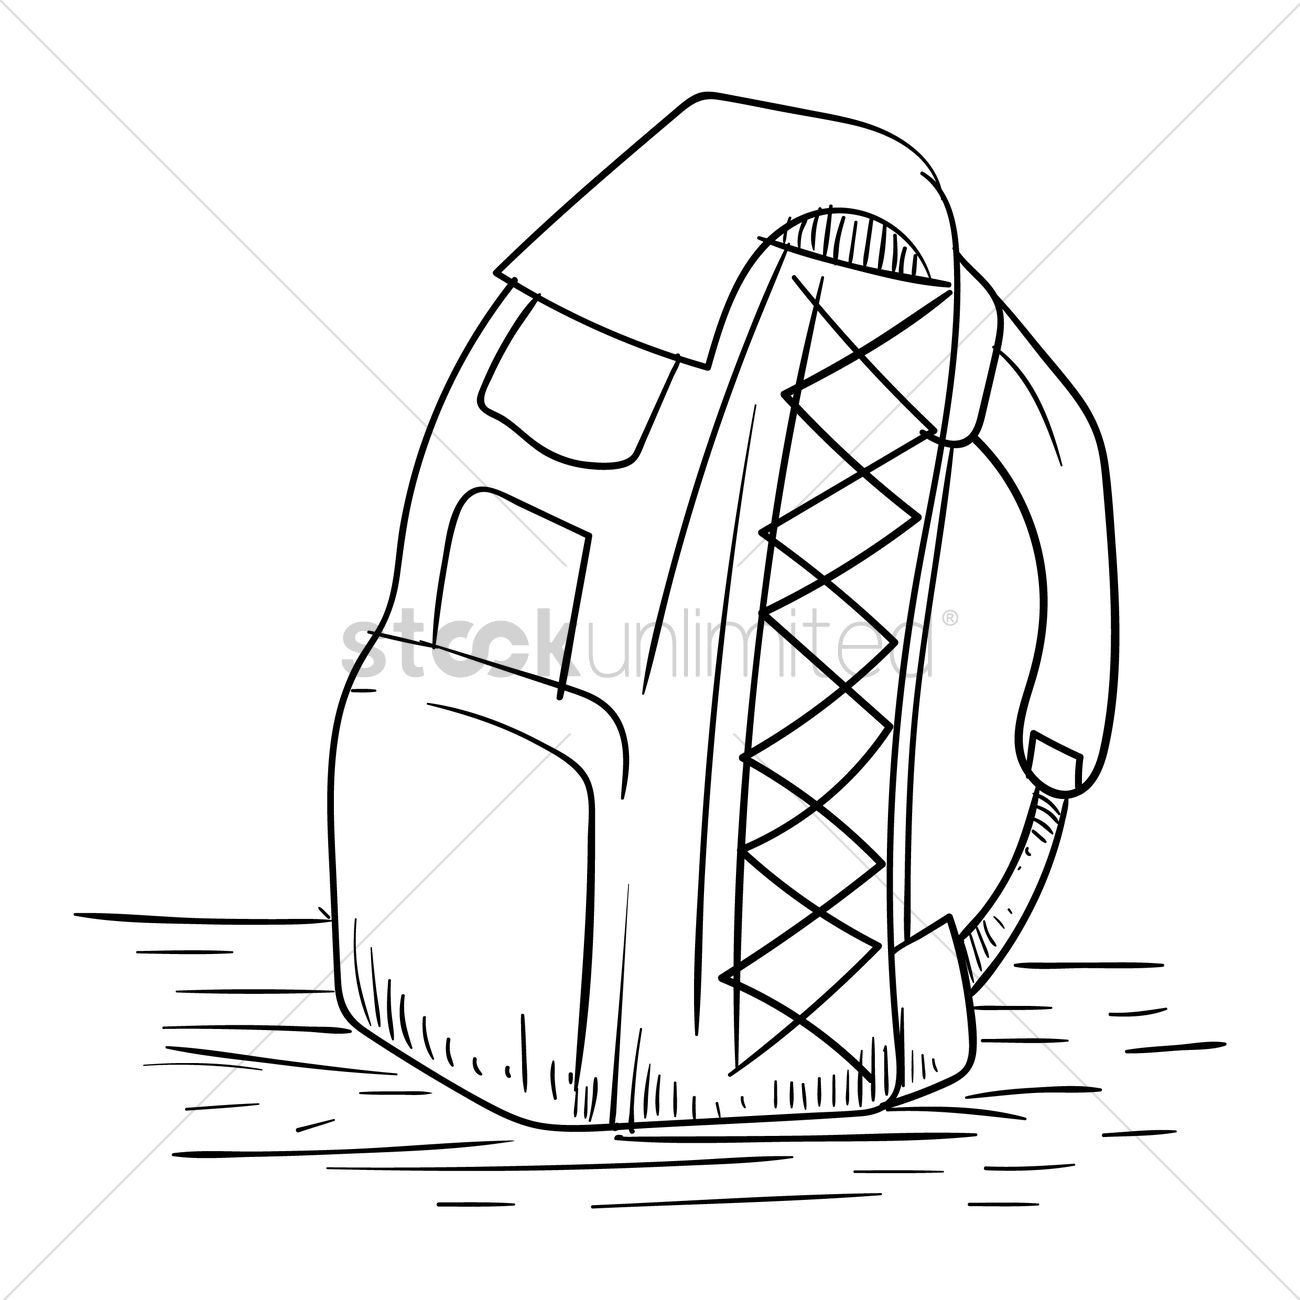 free backpack vector image 1567309 stockunlimited